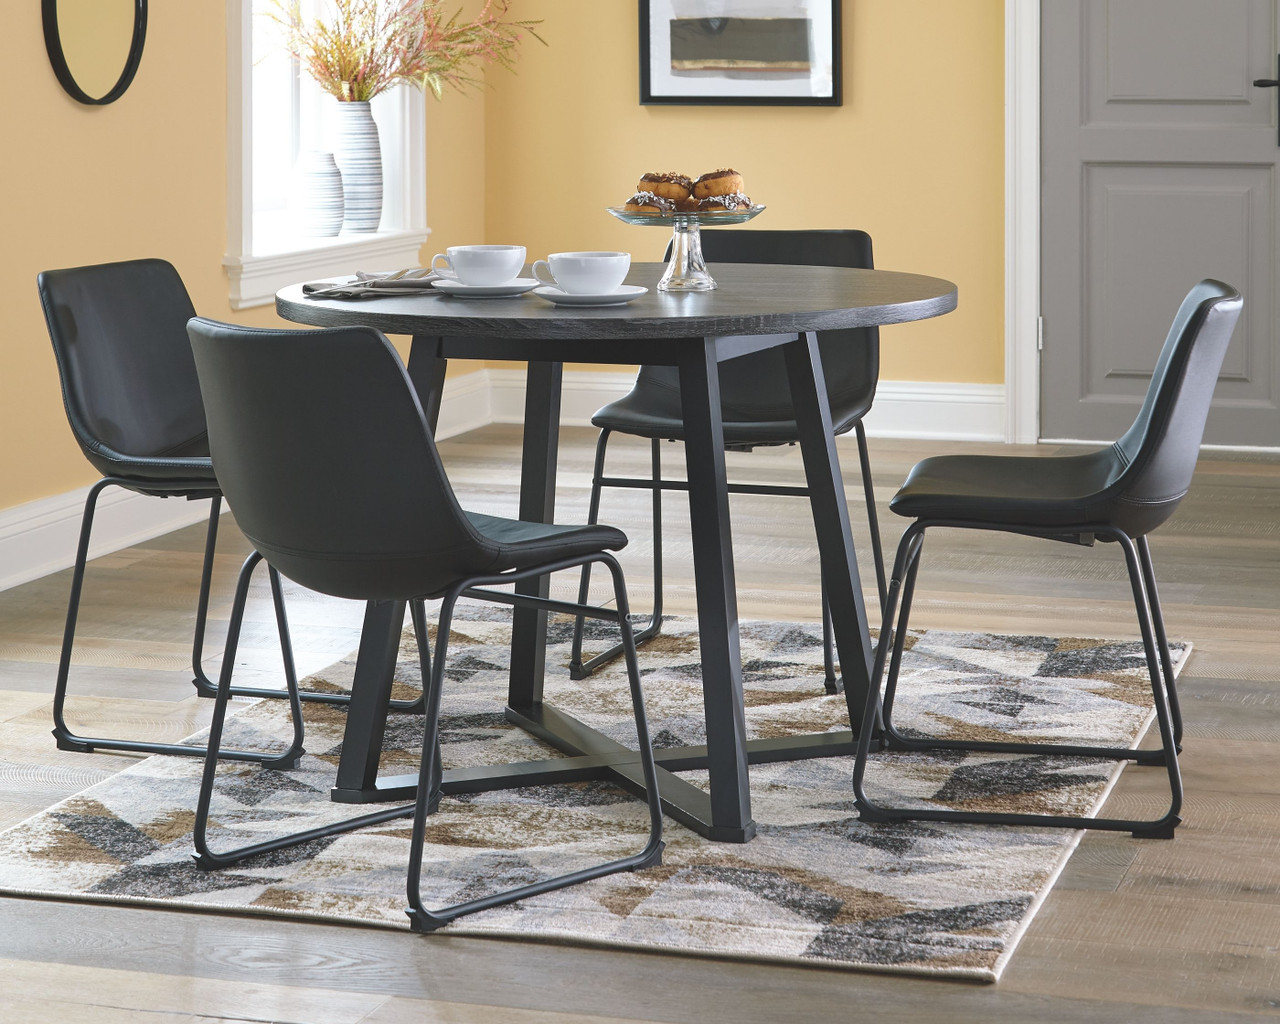 The Centiar Gray Black Round Dining Room Table Available At Dayton Discount Furniture Serving Vandalia Kettering And Springfield Ohio